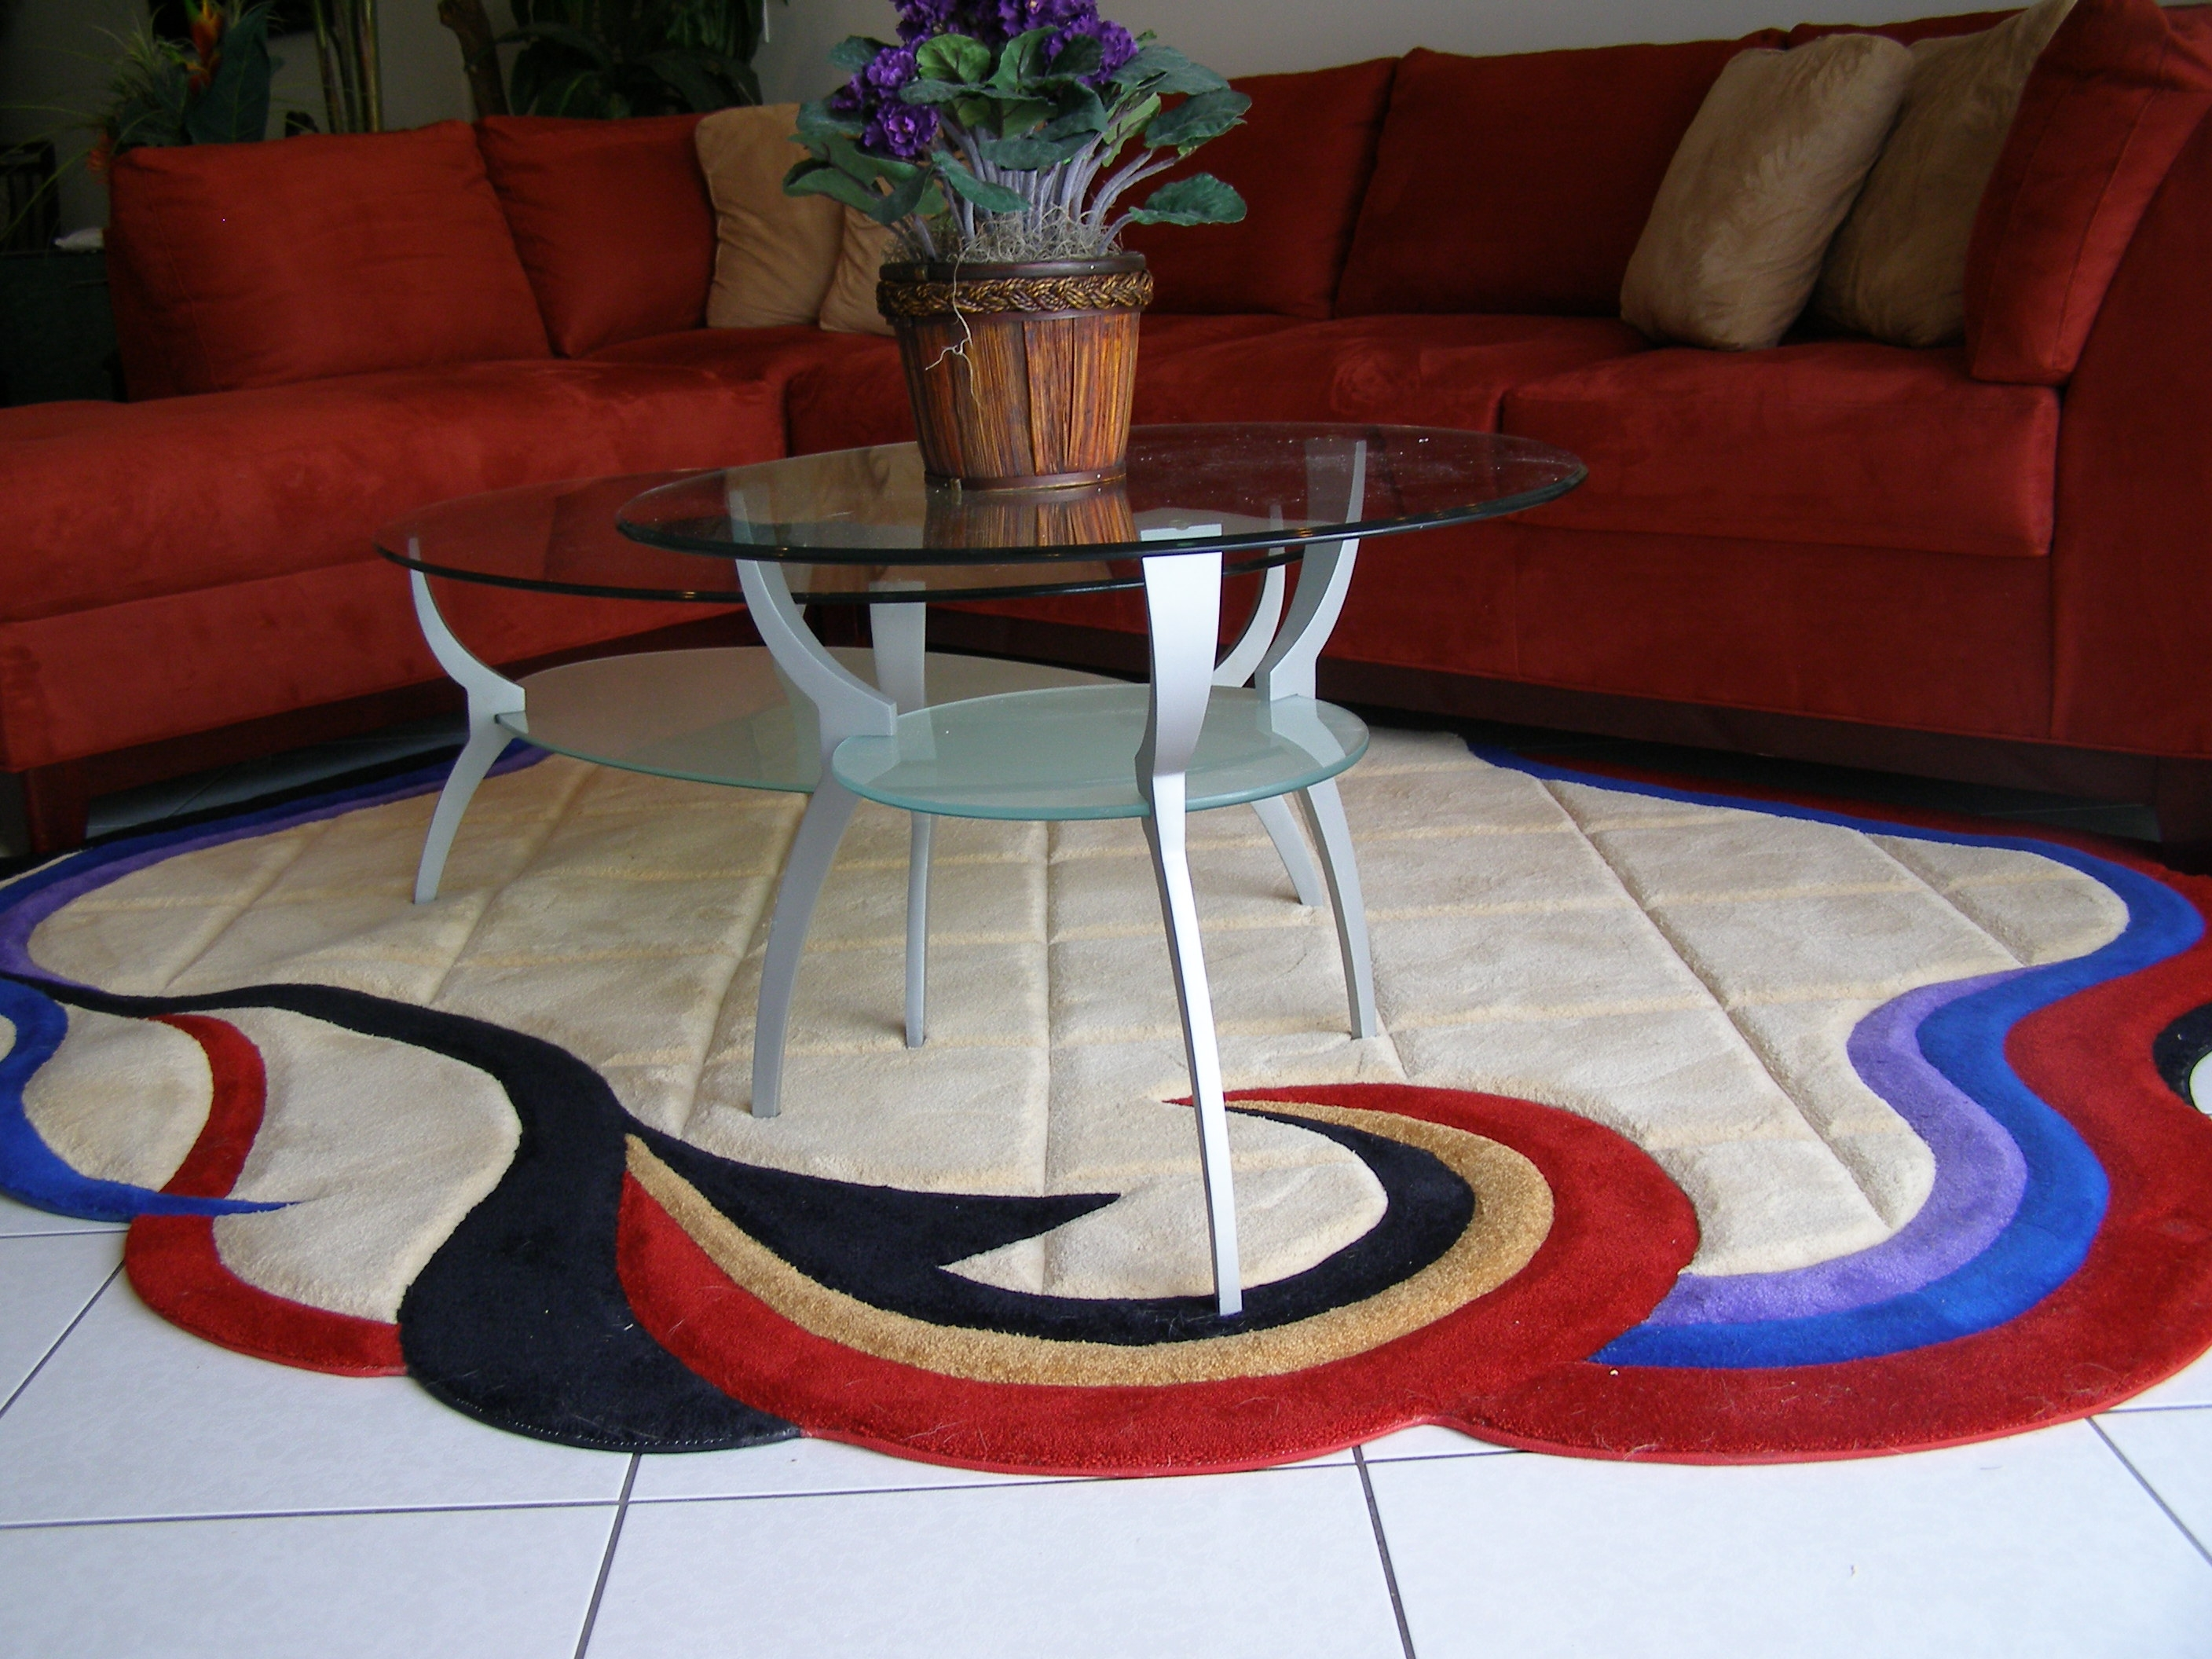 Custom Made Rugs Awesome On Persian Runner Rug Ideas With Runners